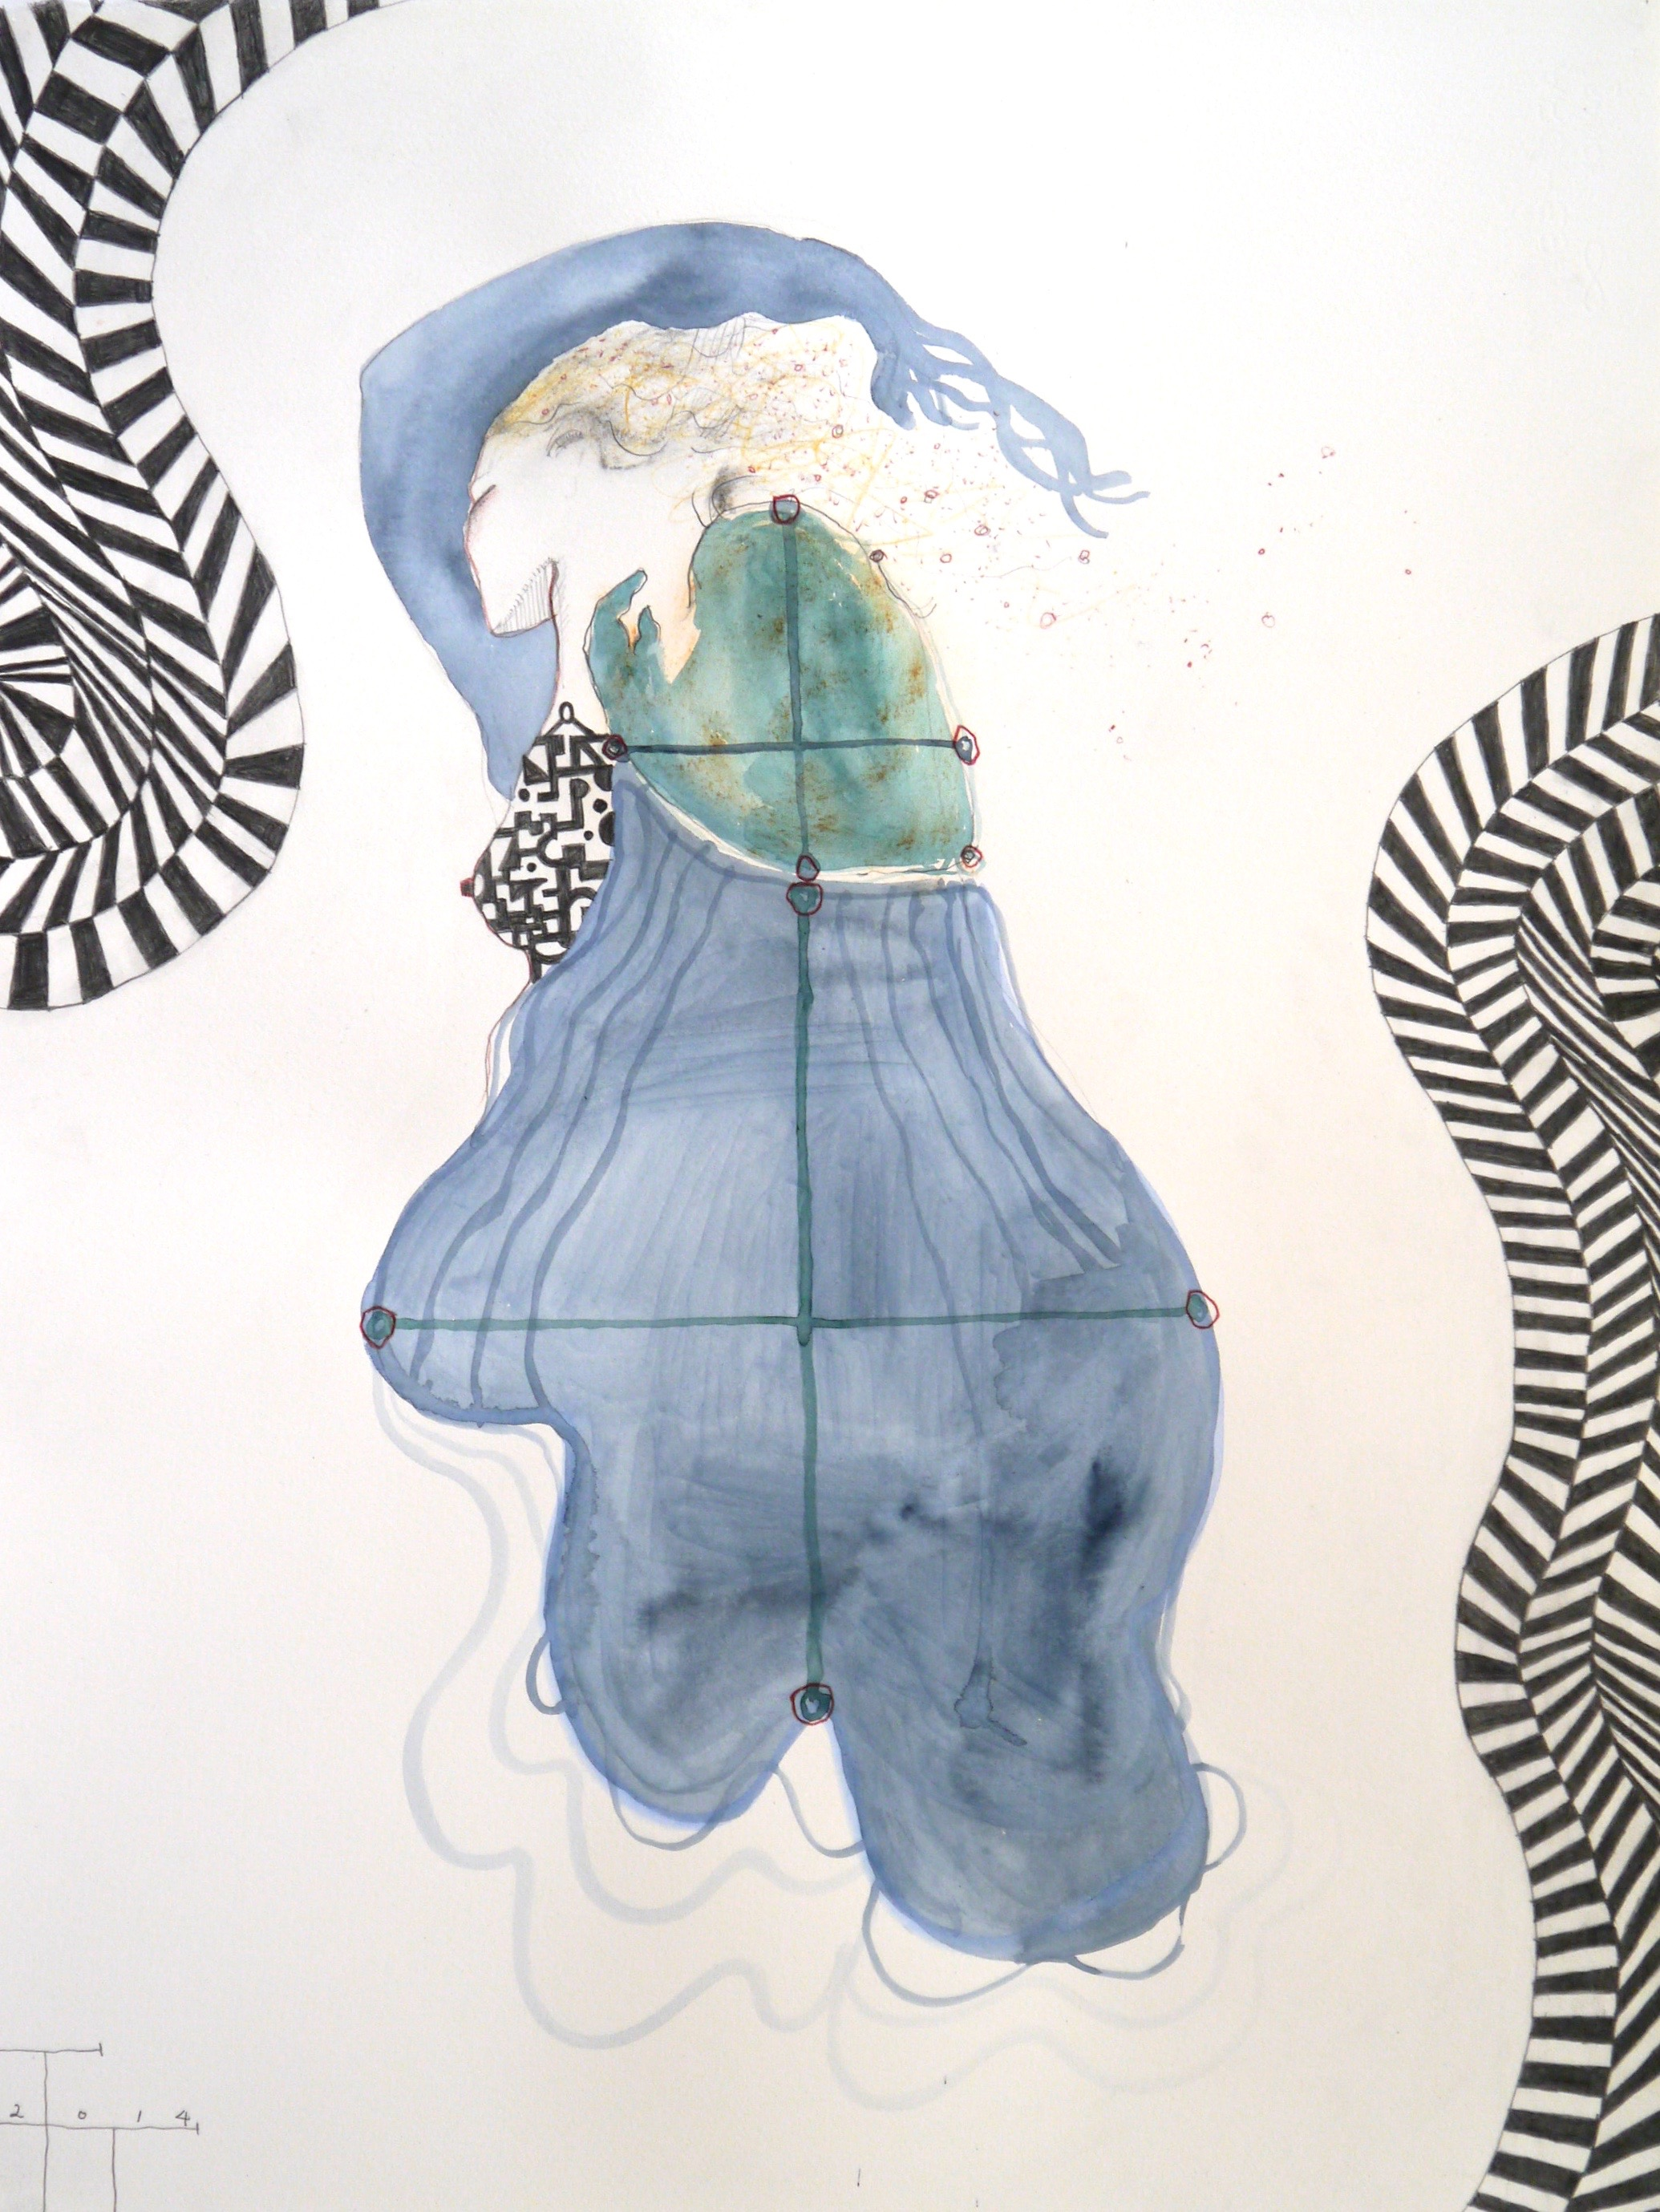 untitled, mixed media on paper, 66 X 50 cm, 2014